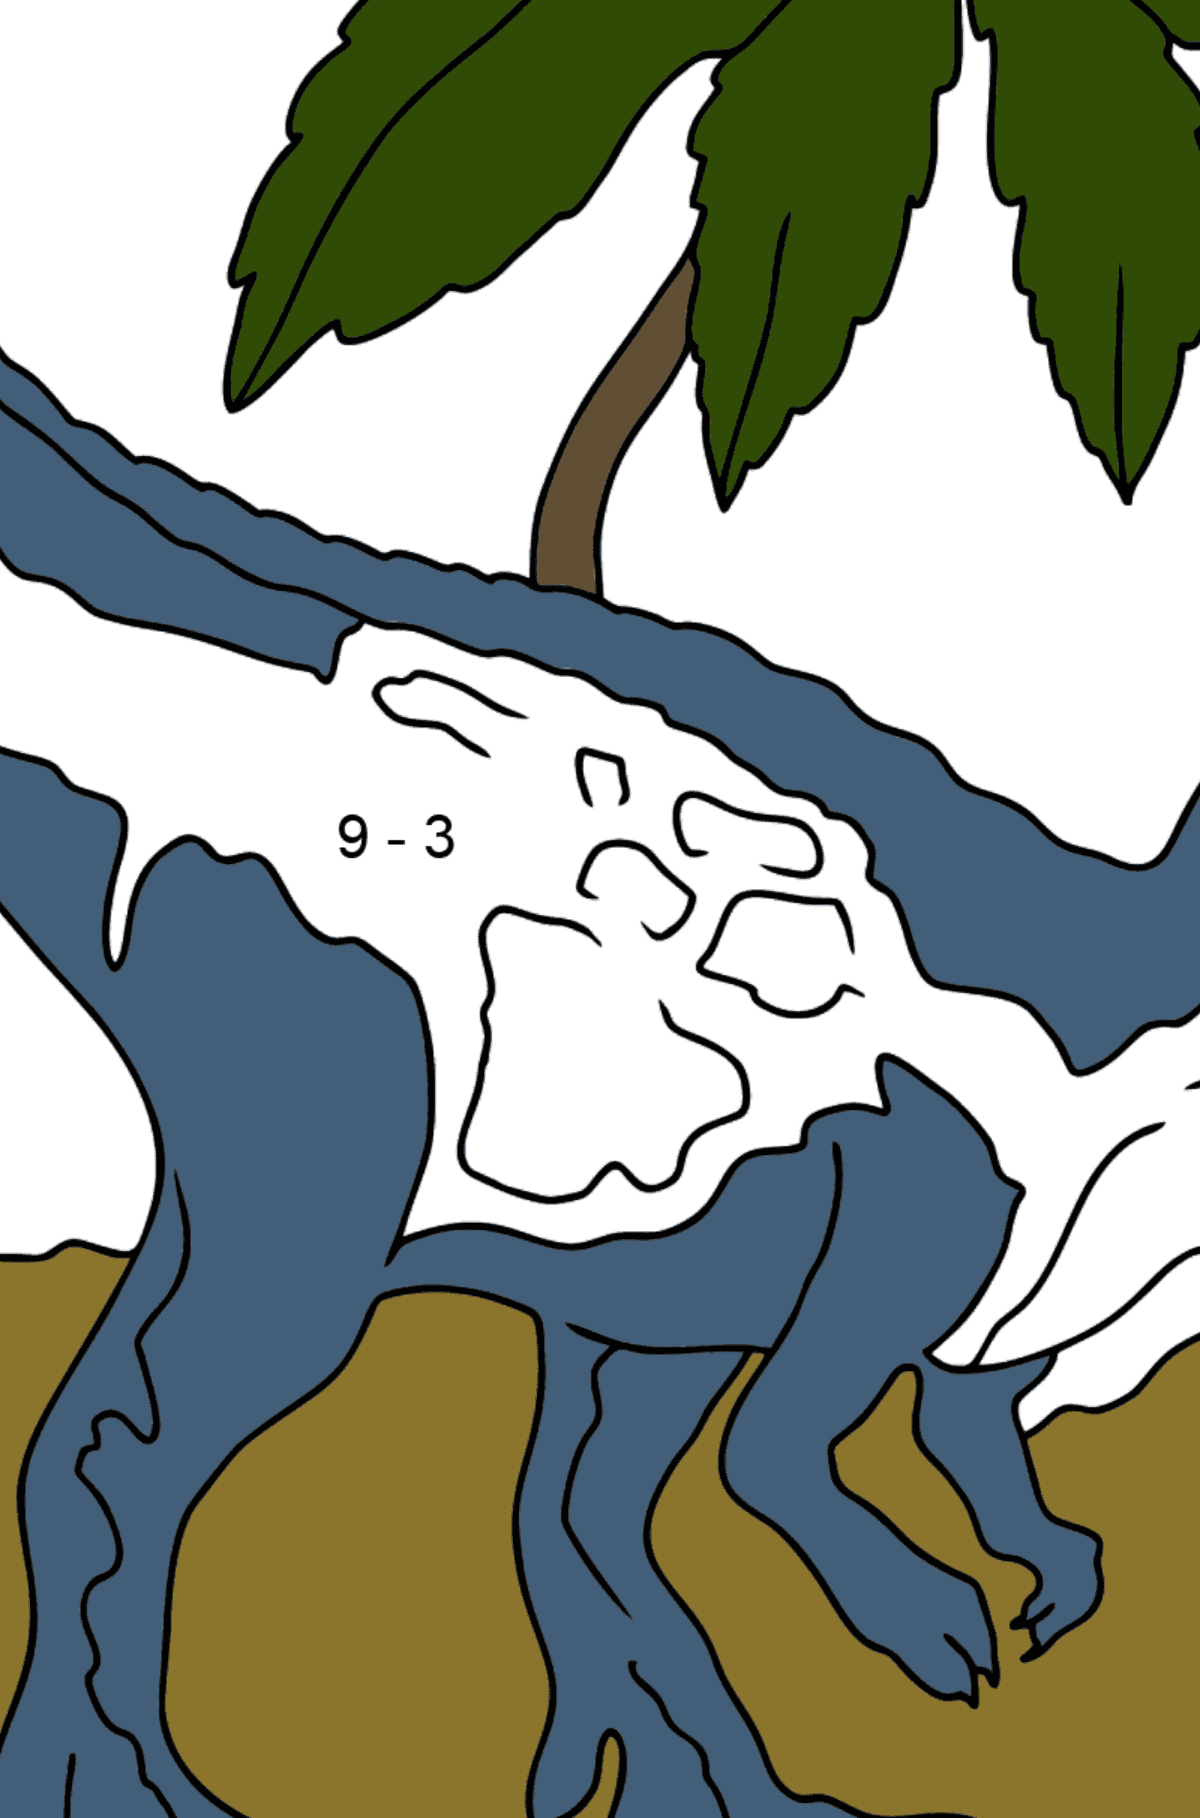 Coloring Page - Tyrannosaurus - The Best Hunter Among Dinosaurs - Math Coloring - Subtraction for Kids